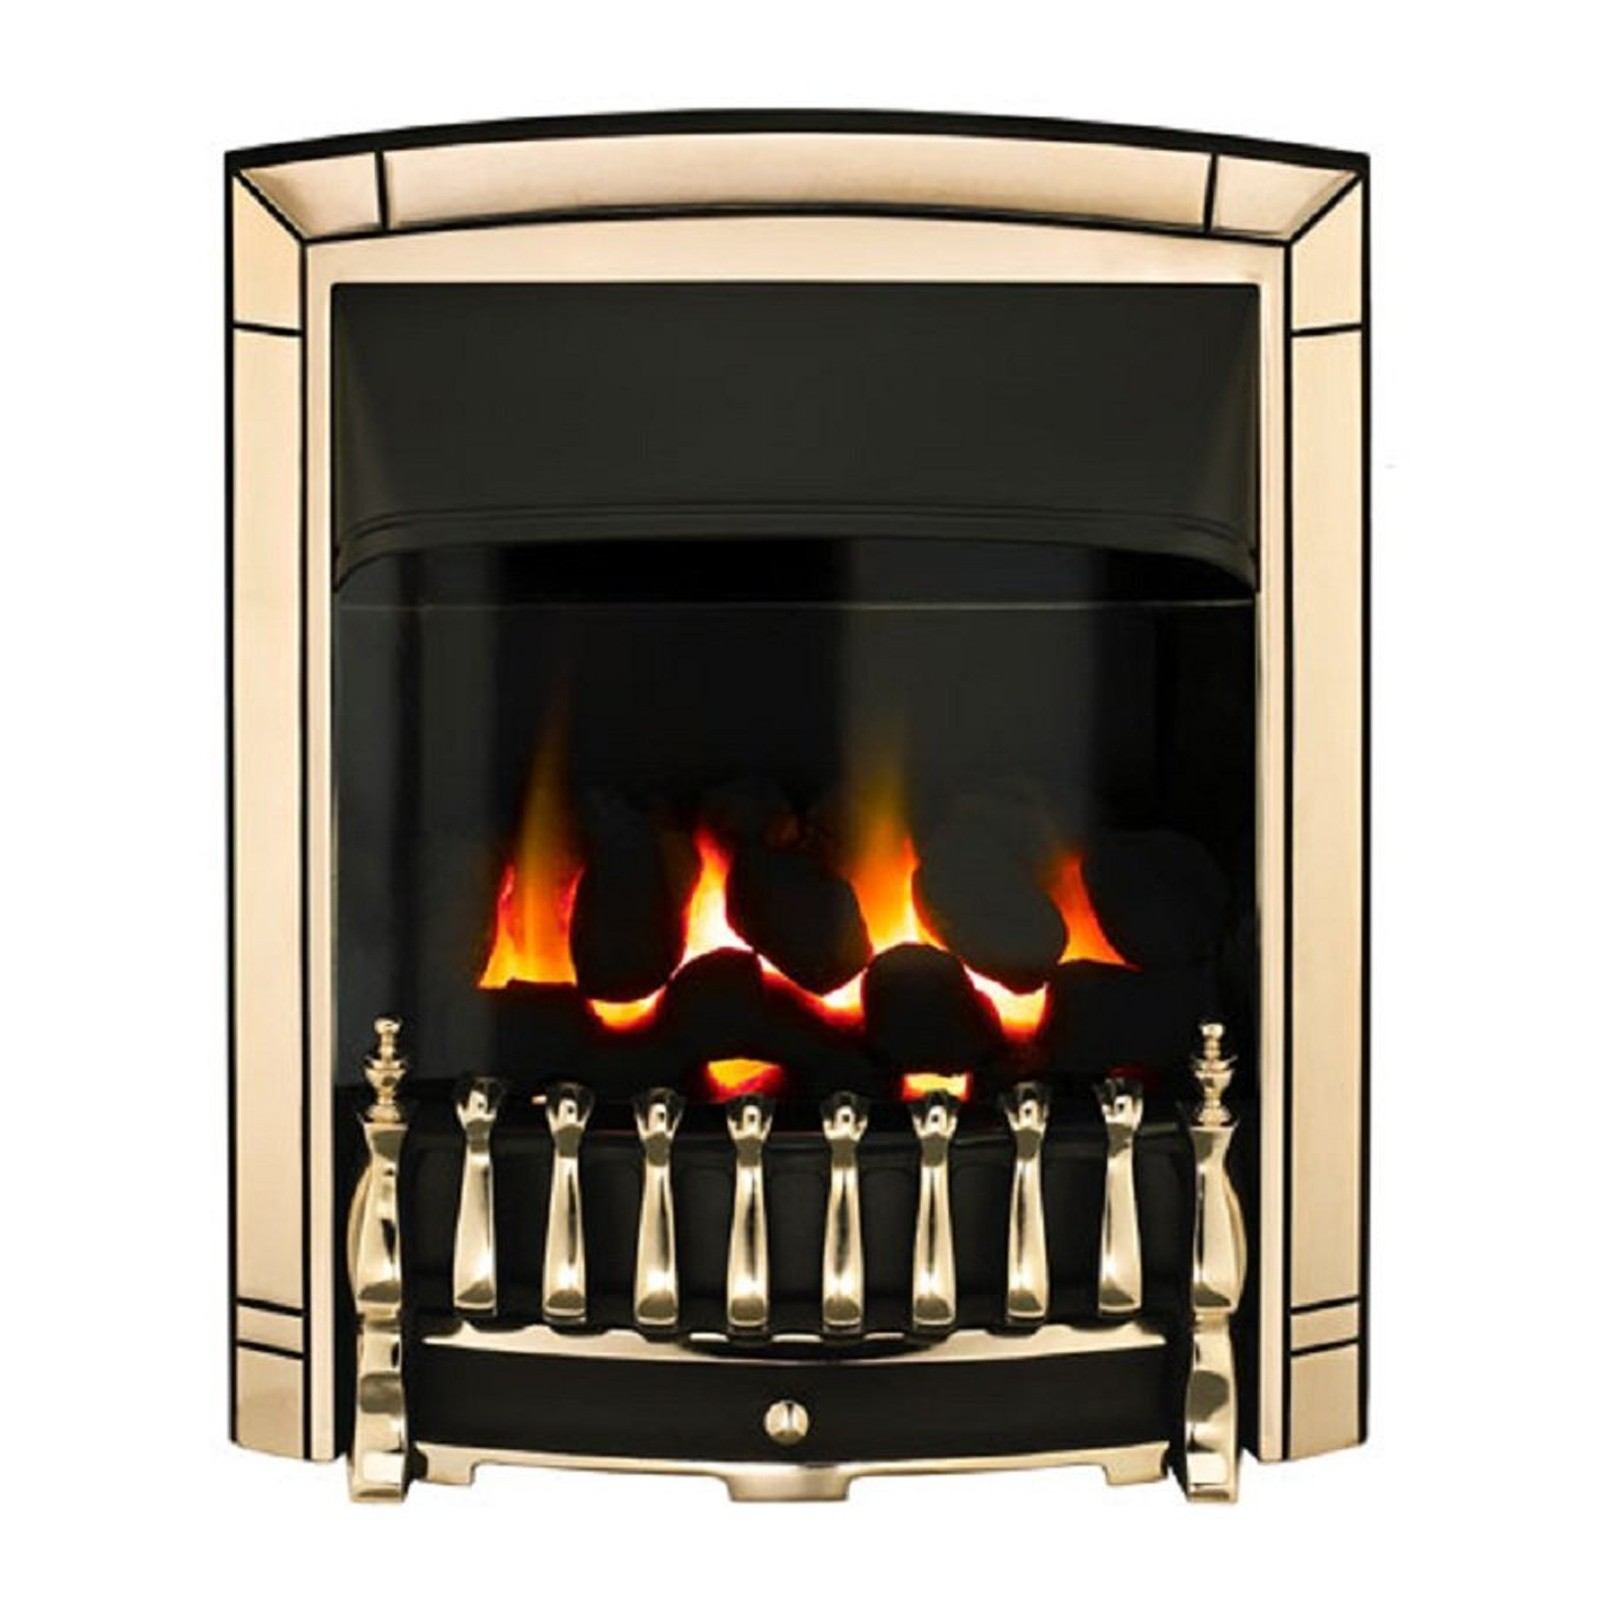 Delightful Valor Dream Balanced Flue Gold Plated Quality